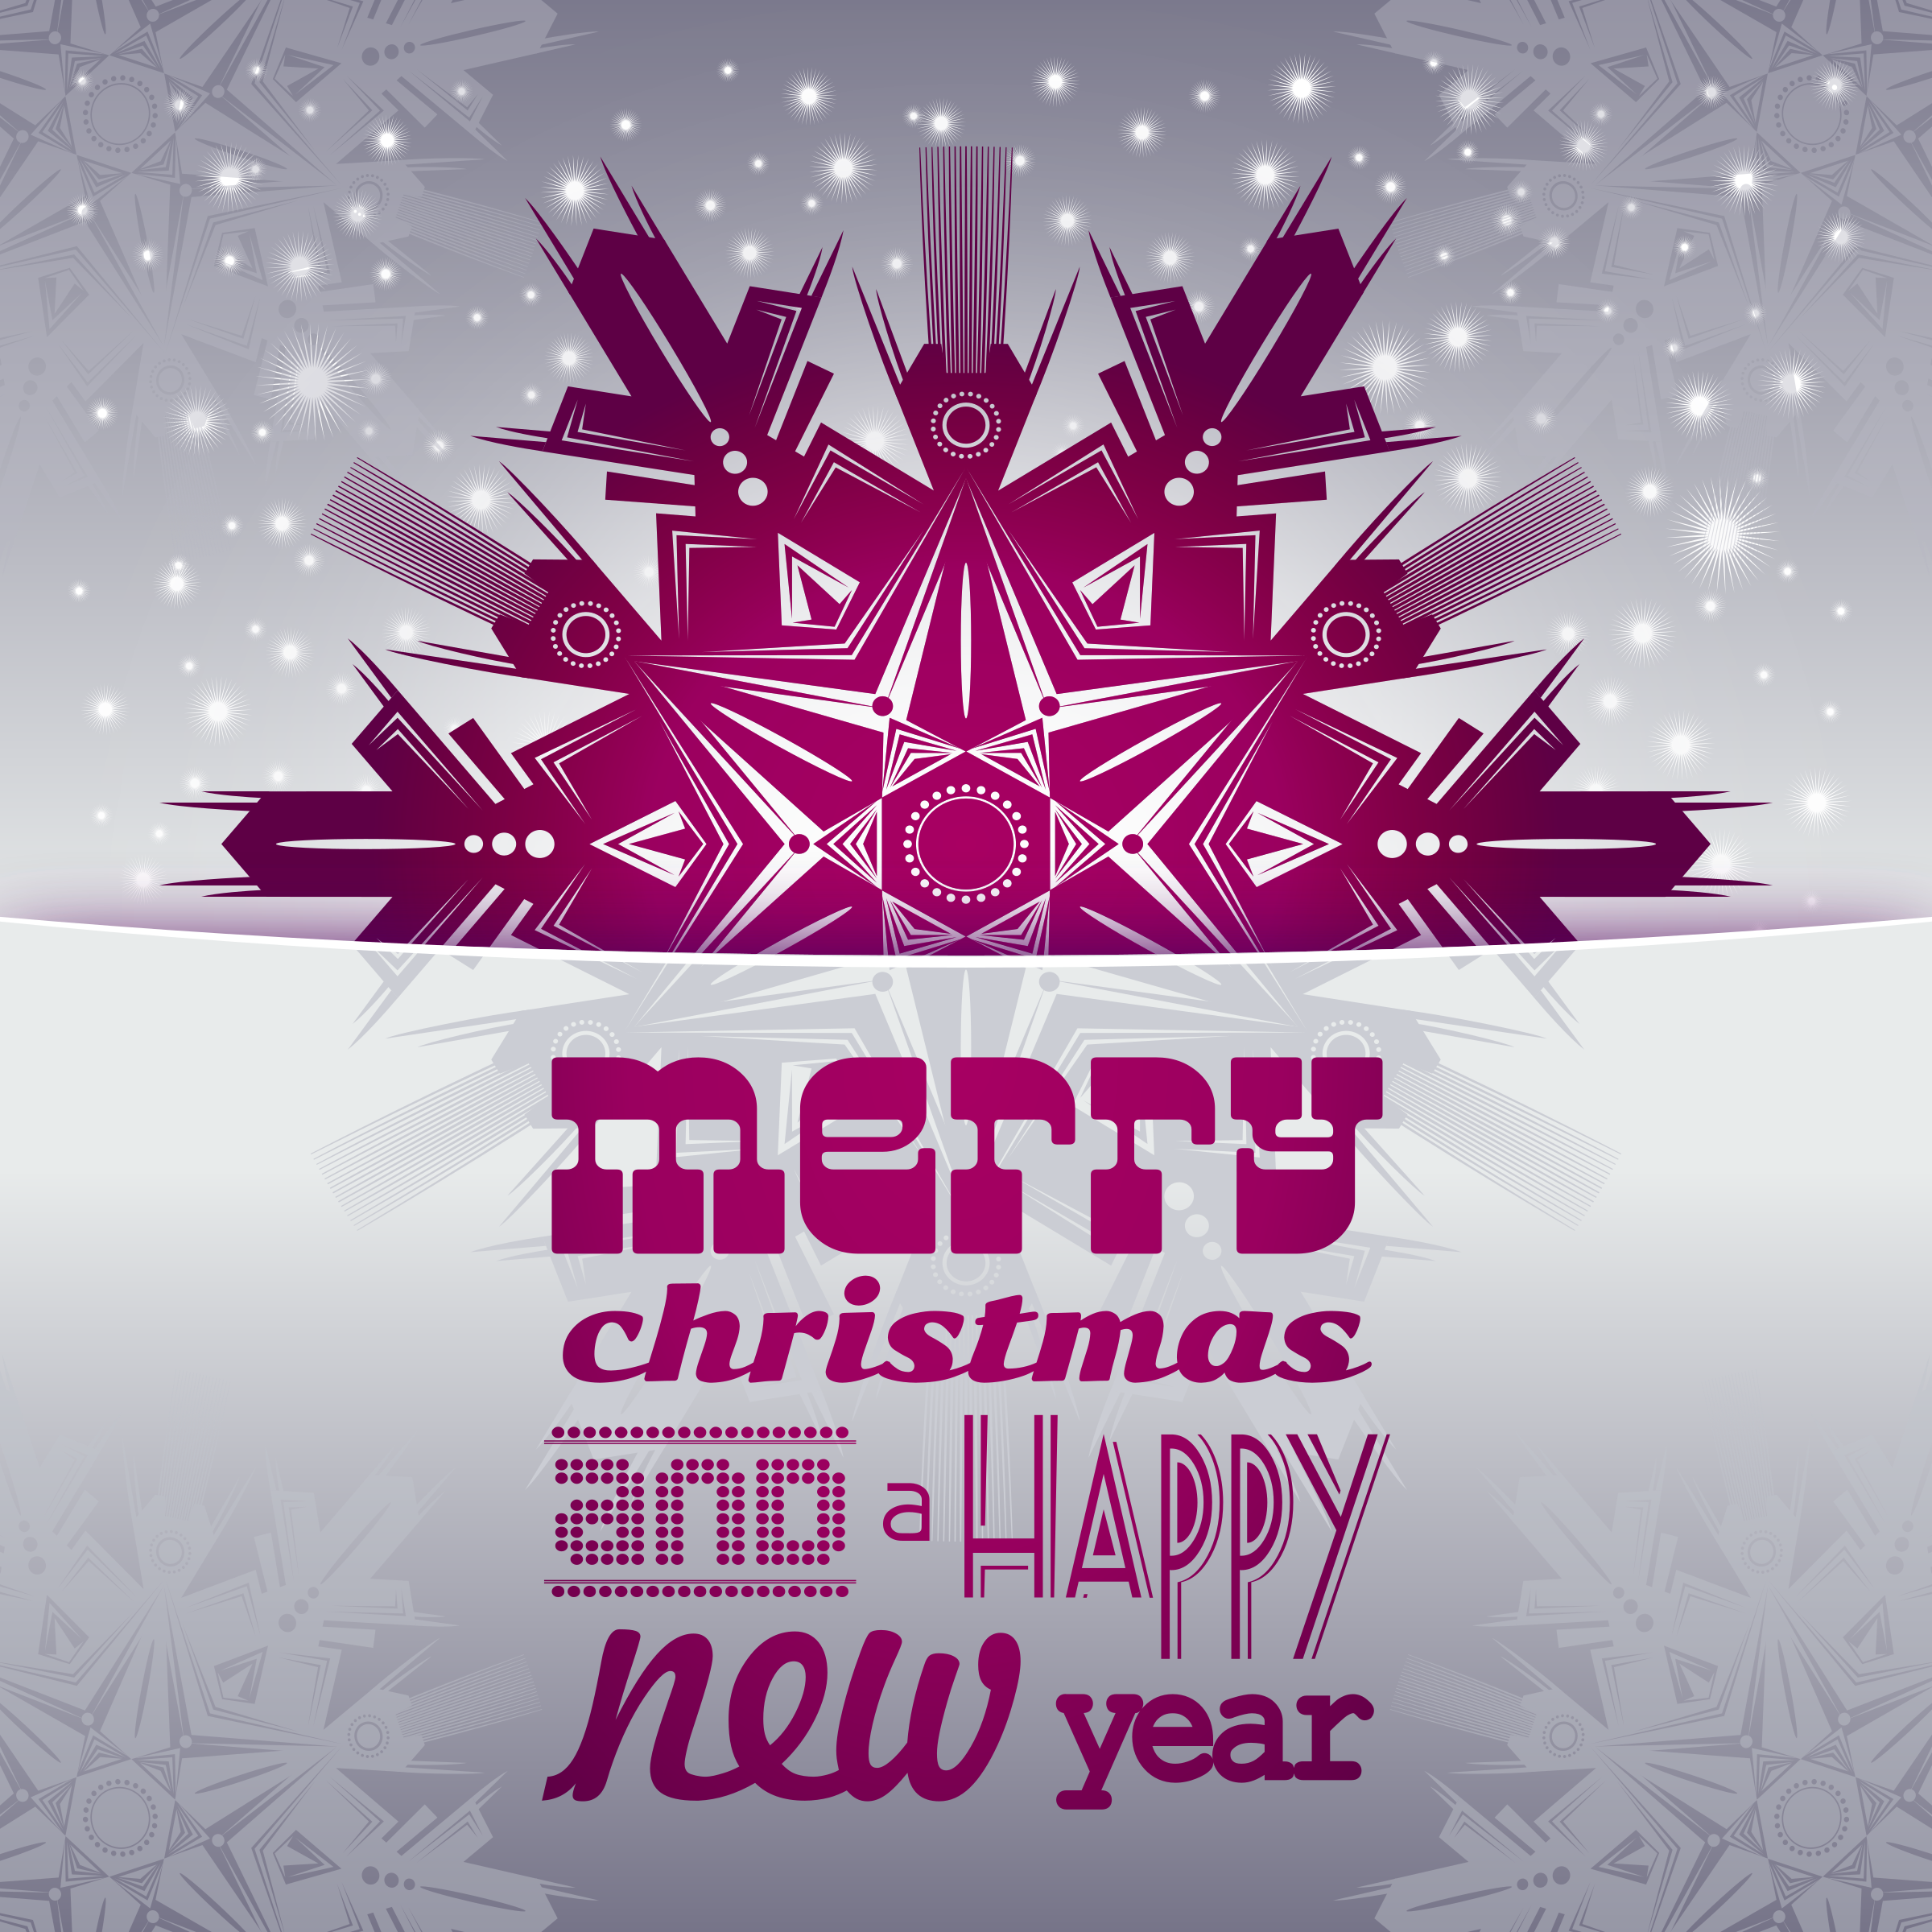 merry christmas and happy new year family service regina healthy families strong communities